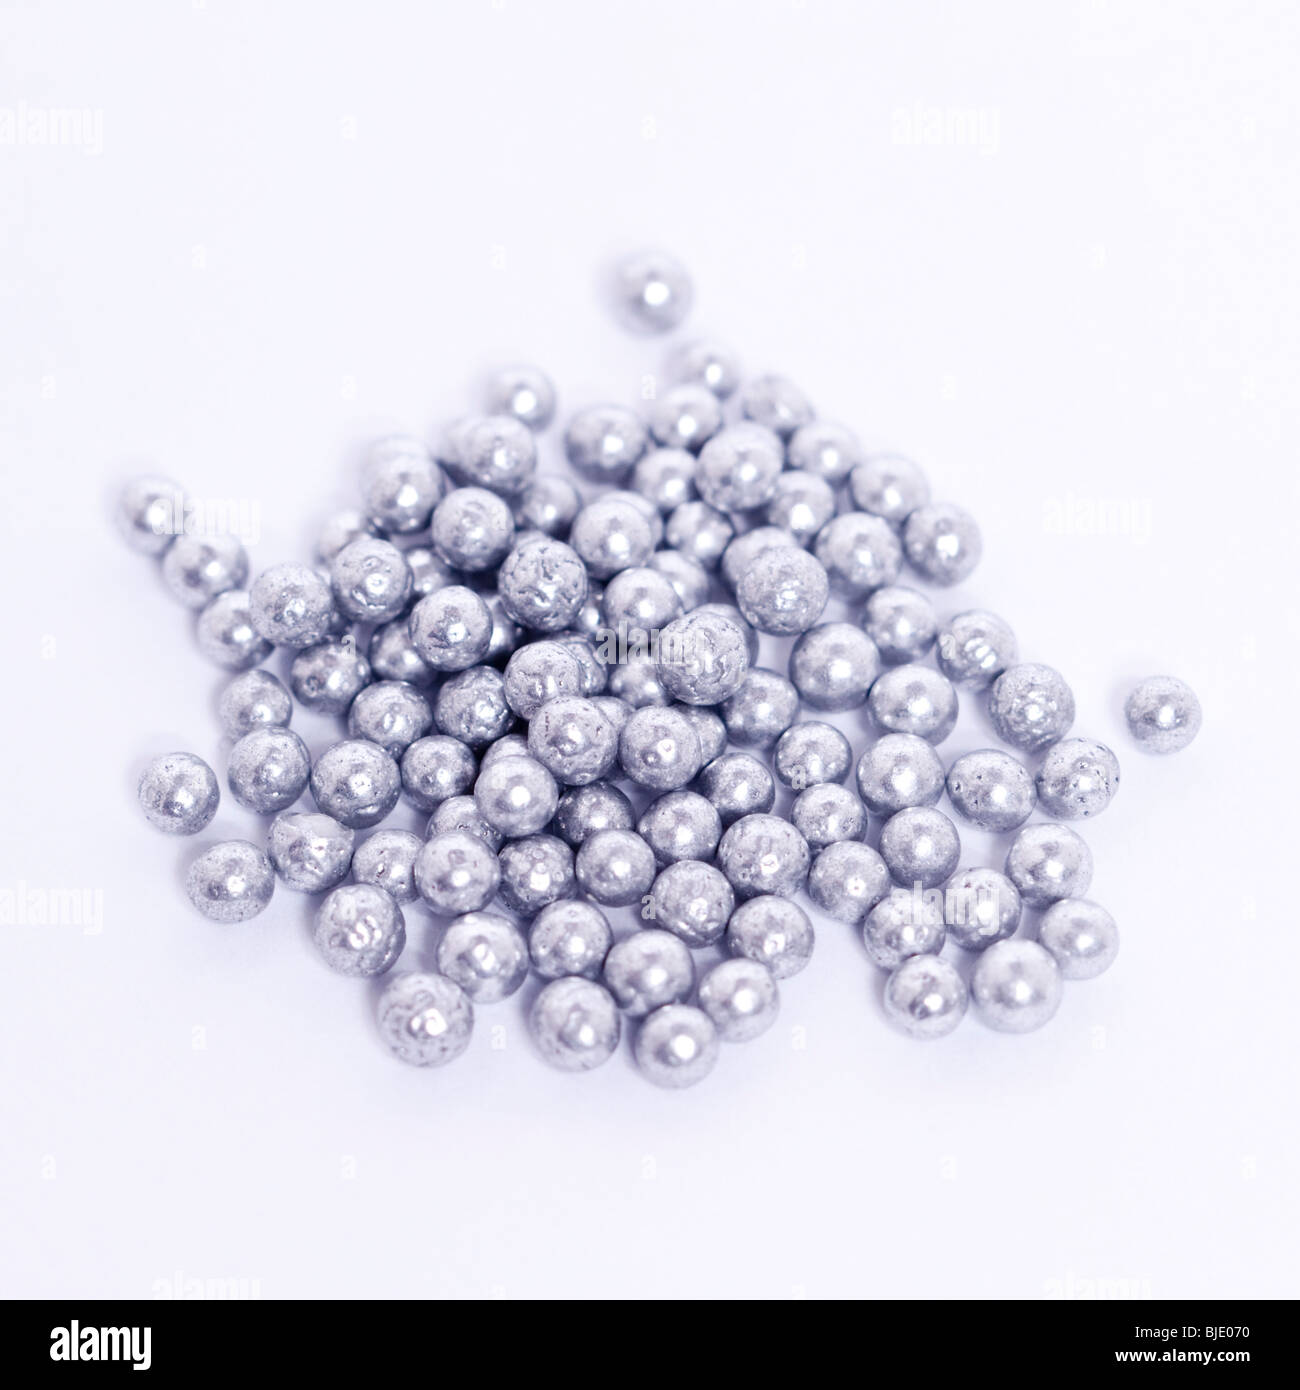 Cake Decoration Silver Balls : A pile of silver balls for cake decorating on a white ...